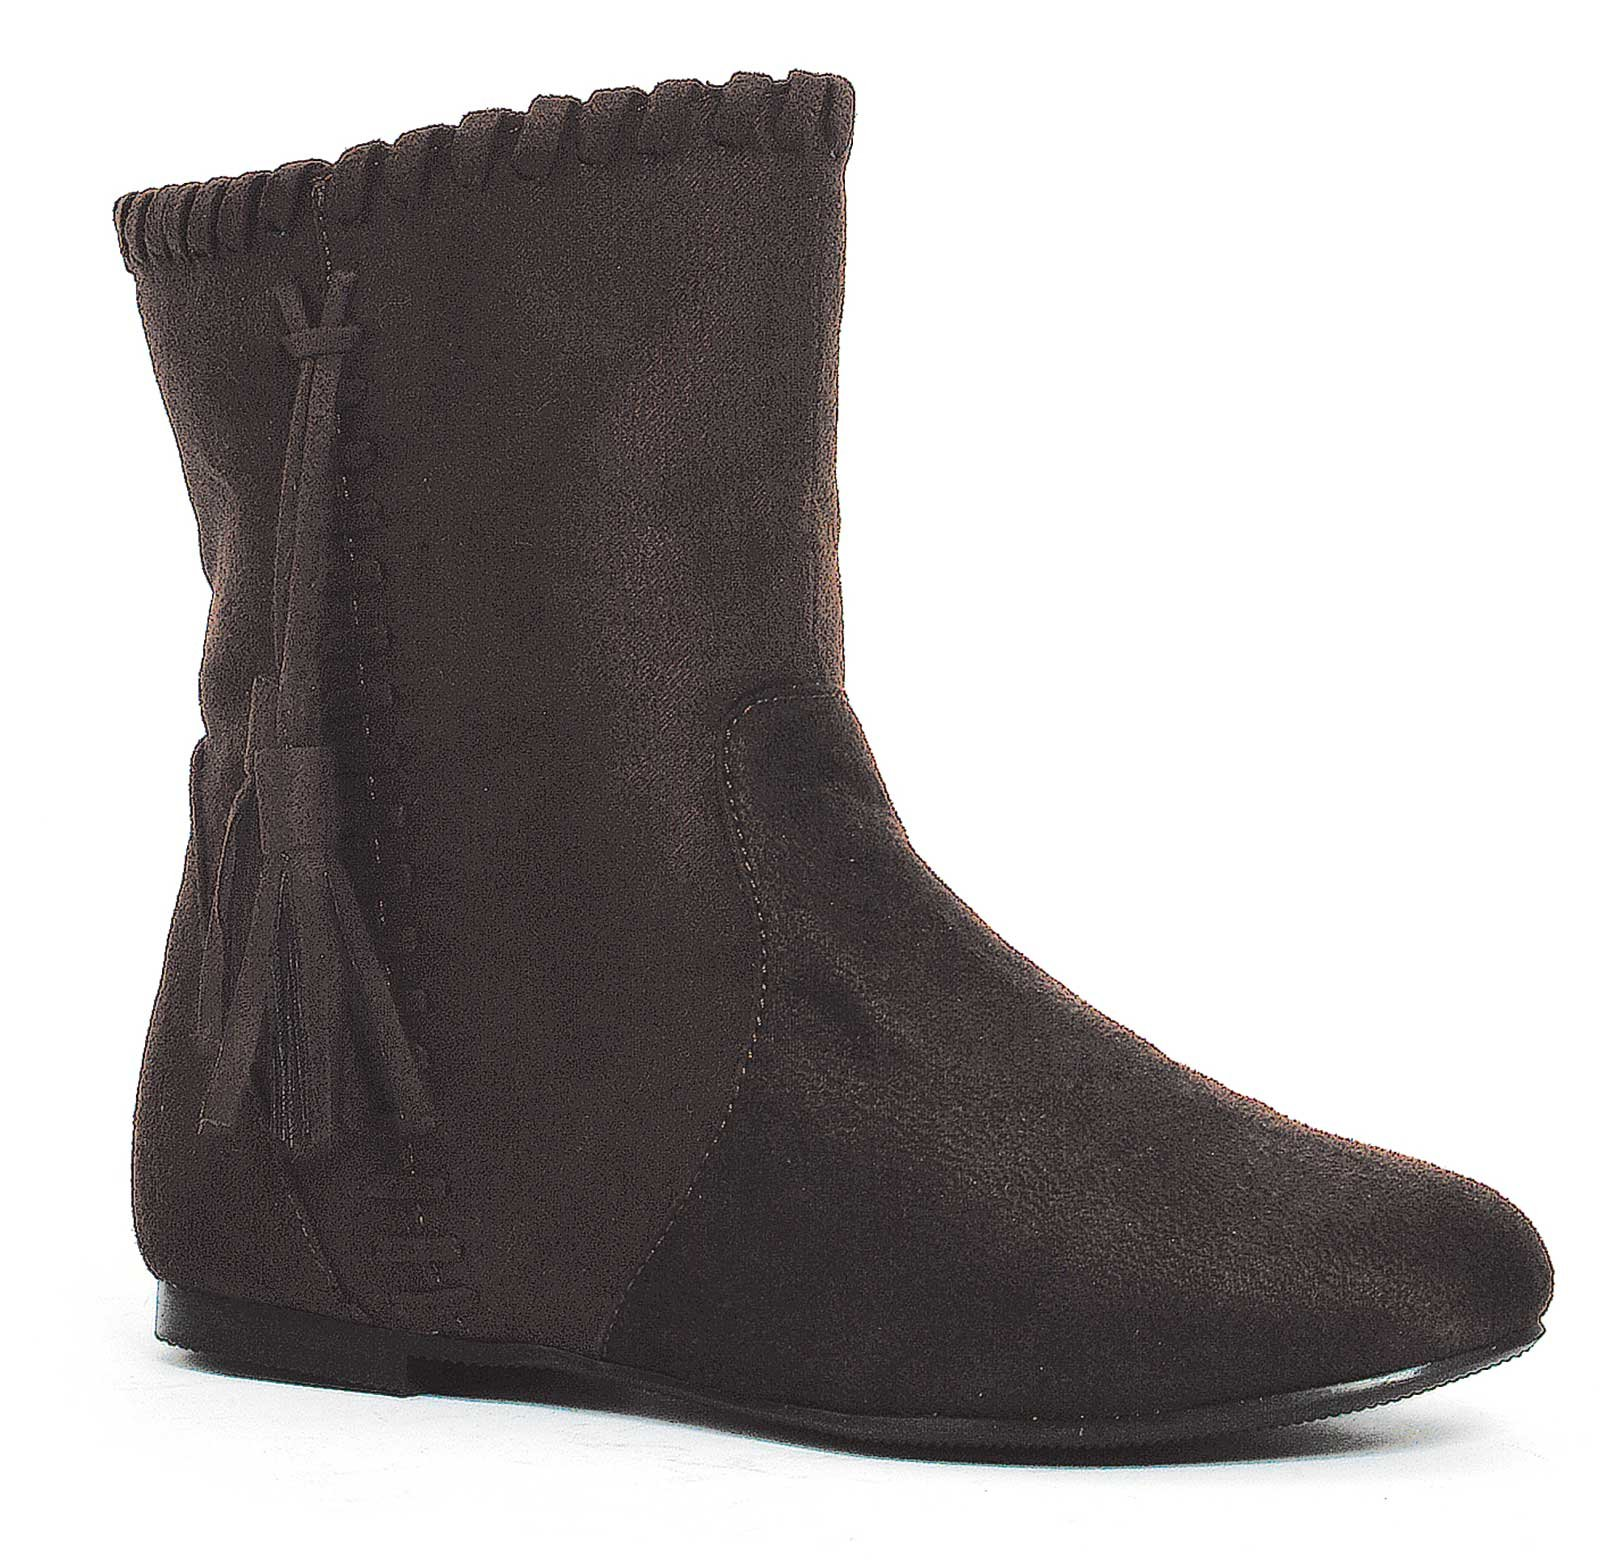 Brown Moccasin Child Boots